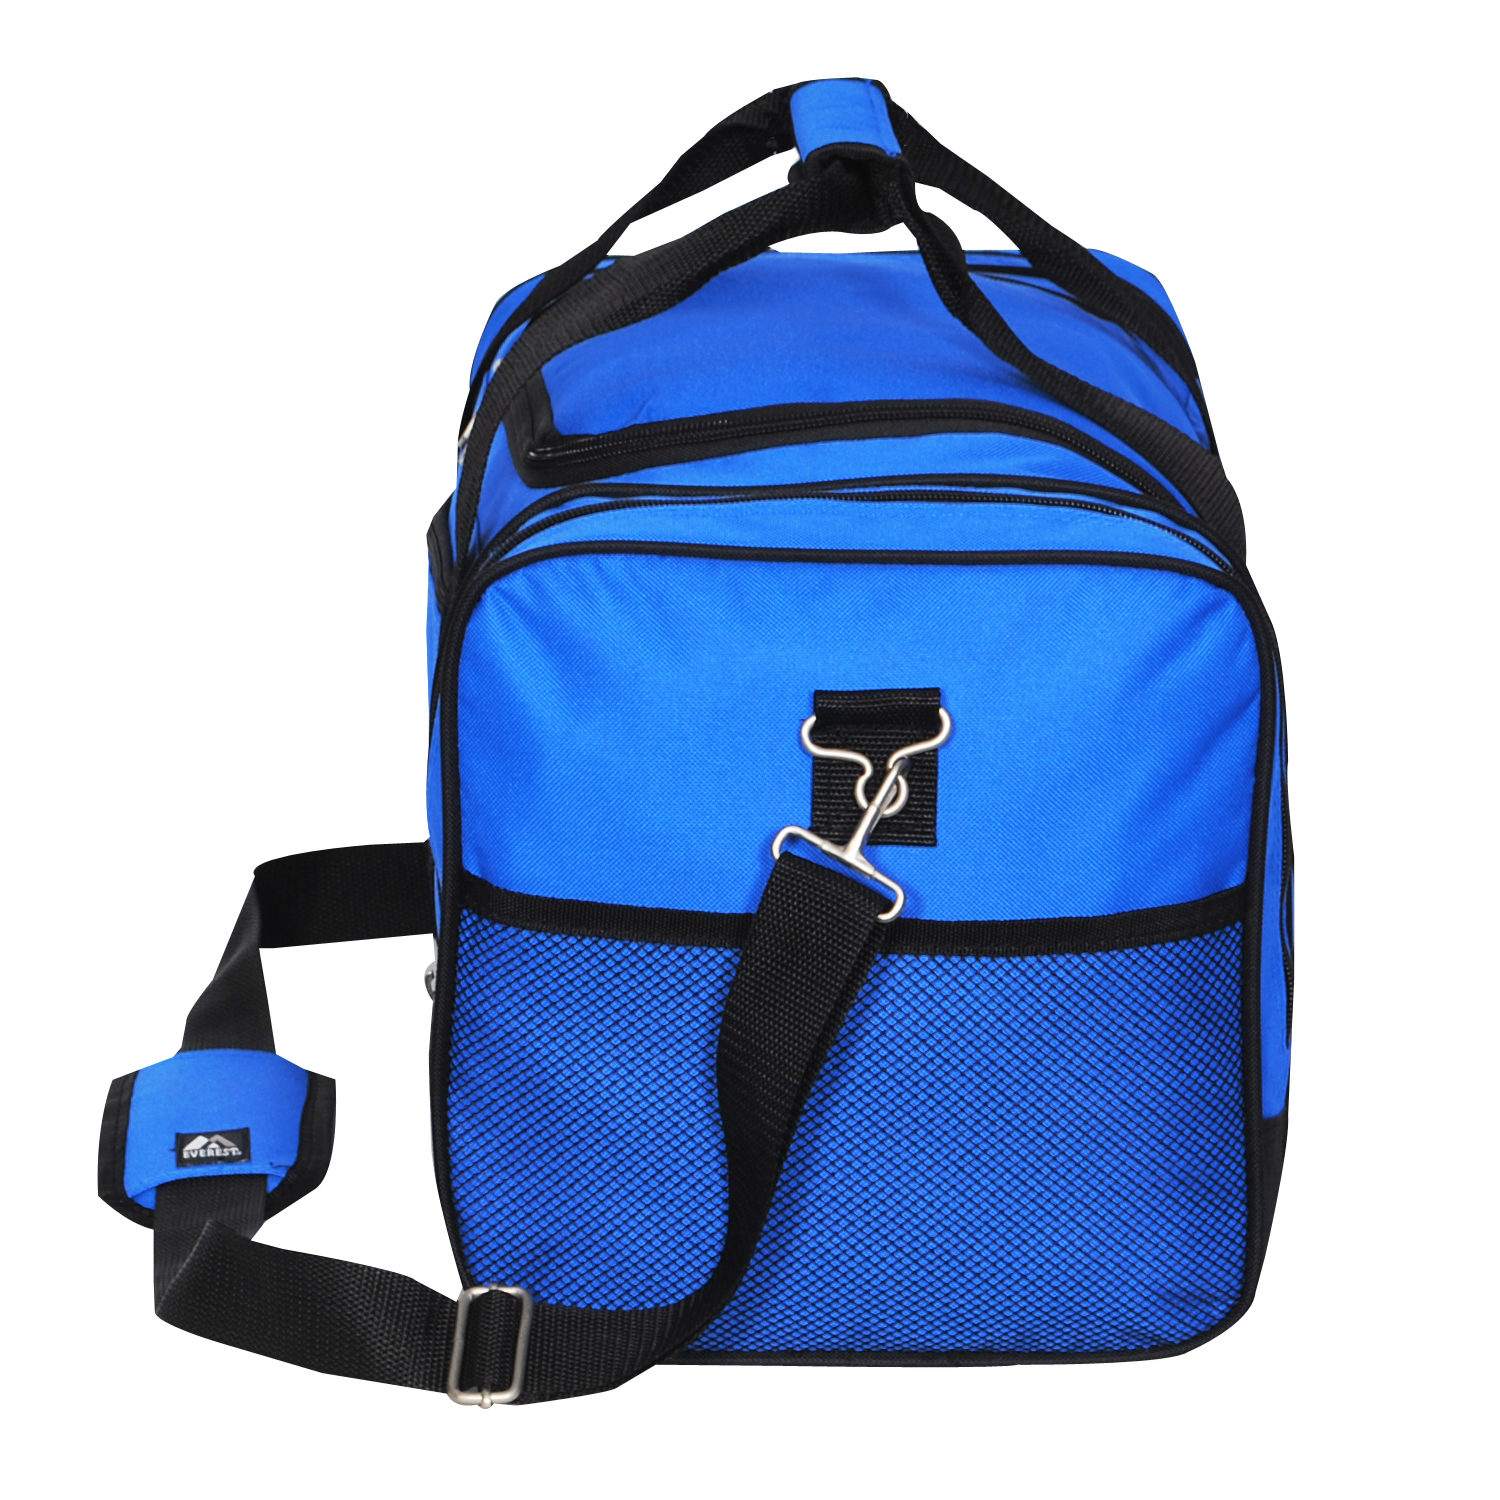 Everest Sporty Gear Bag